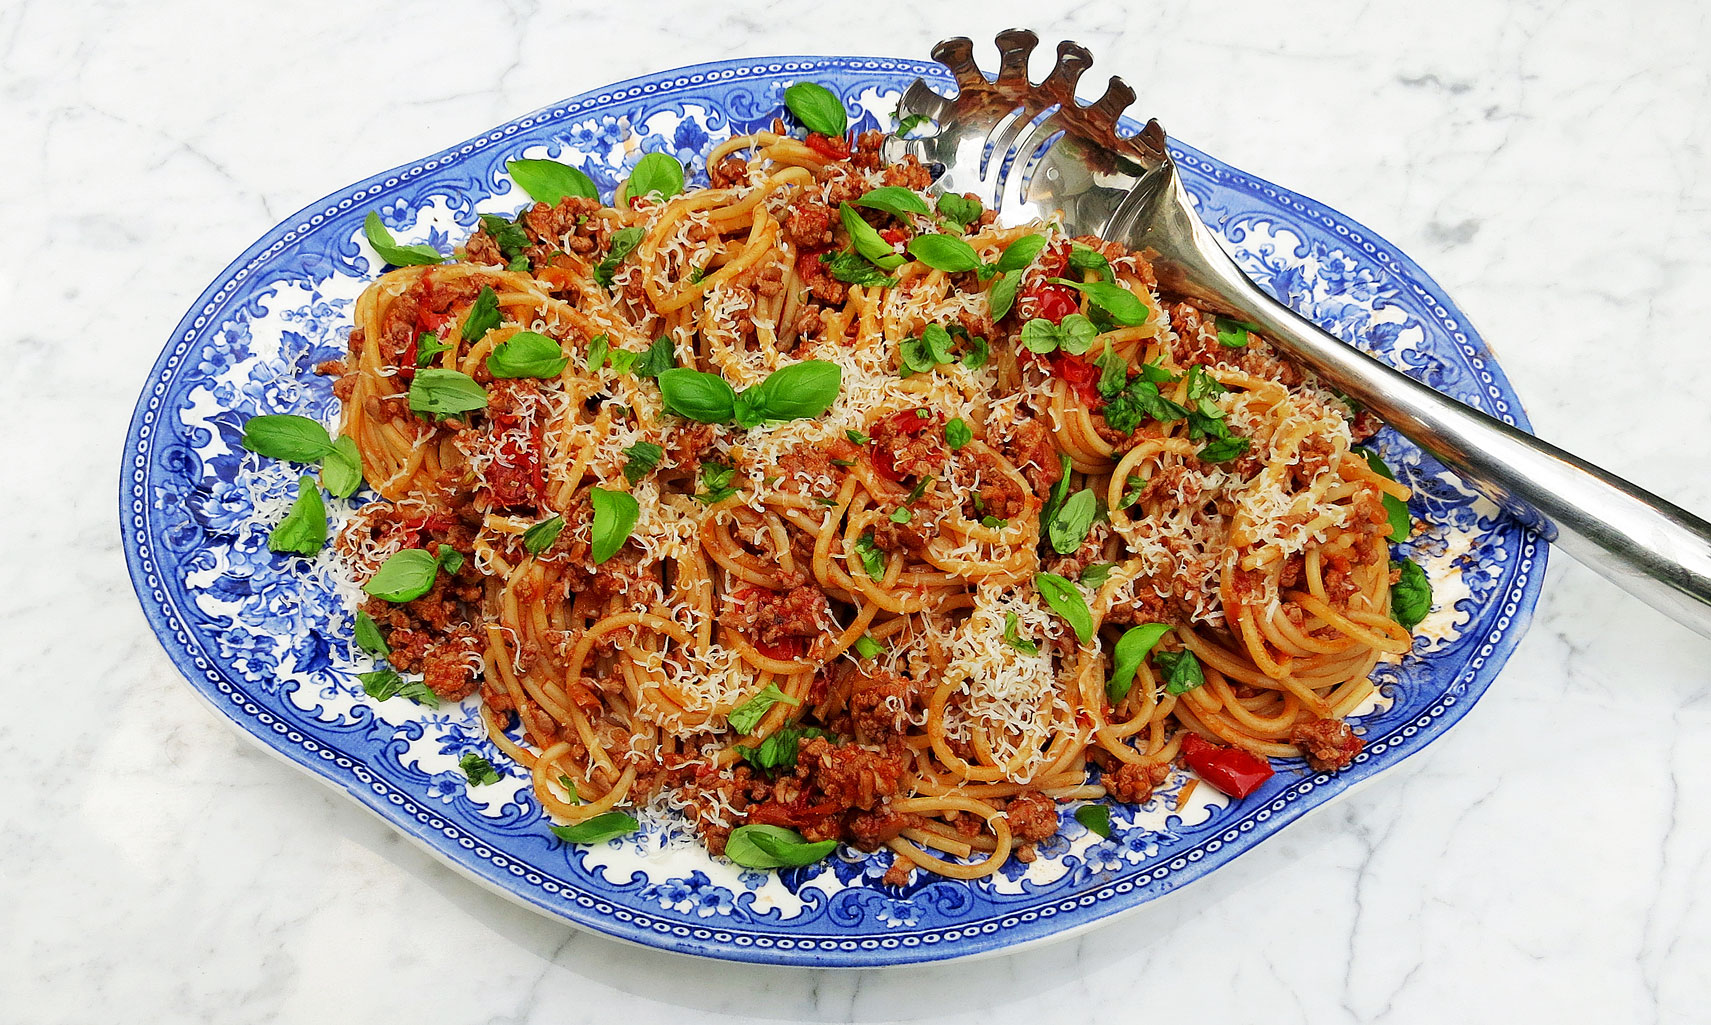 Pork ragu with spaghetti